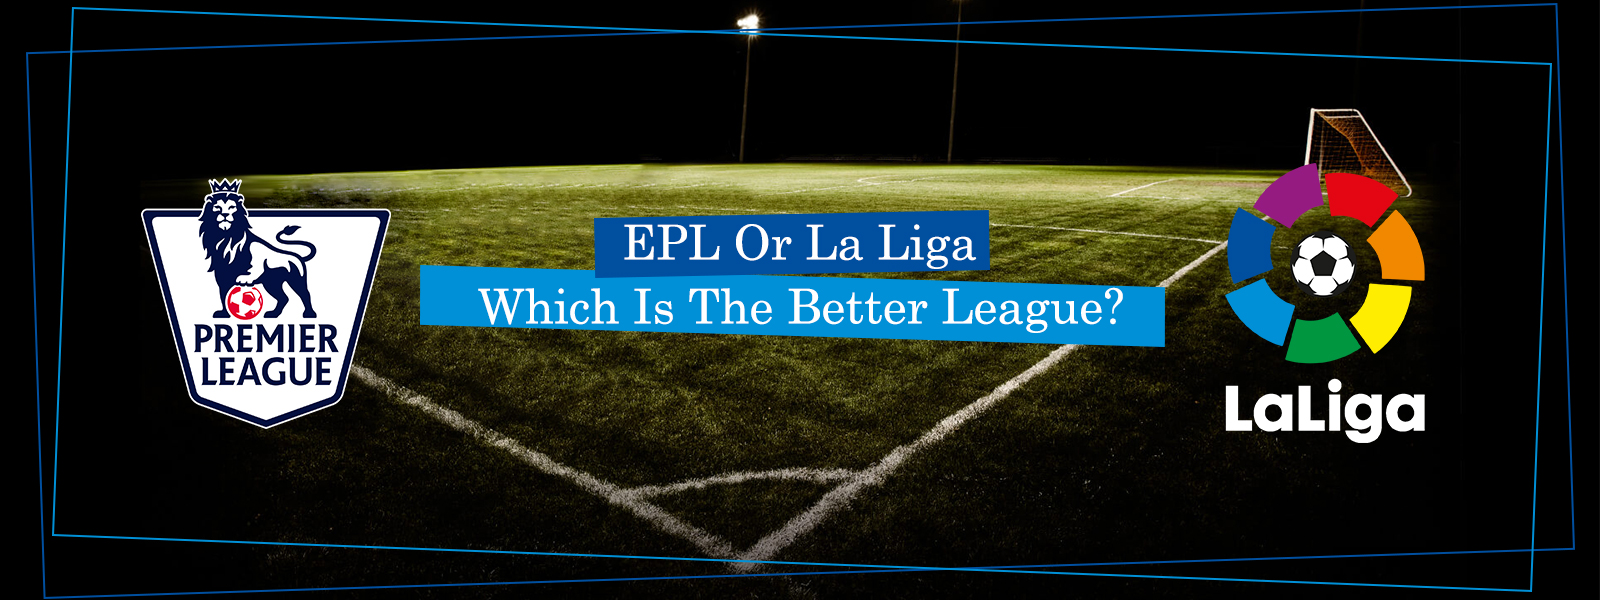 Premier League Or La Liga, Which Is The Better League?